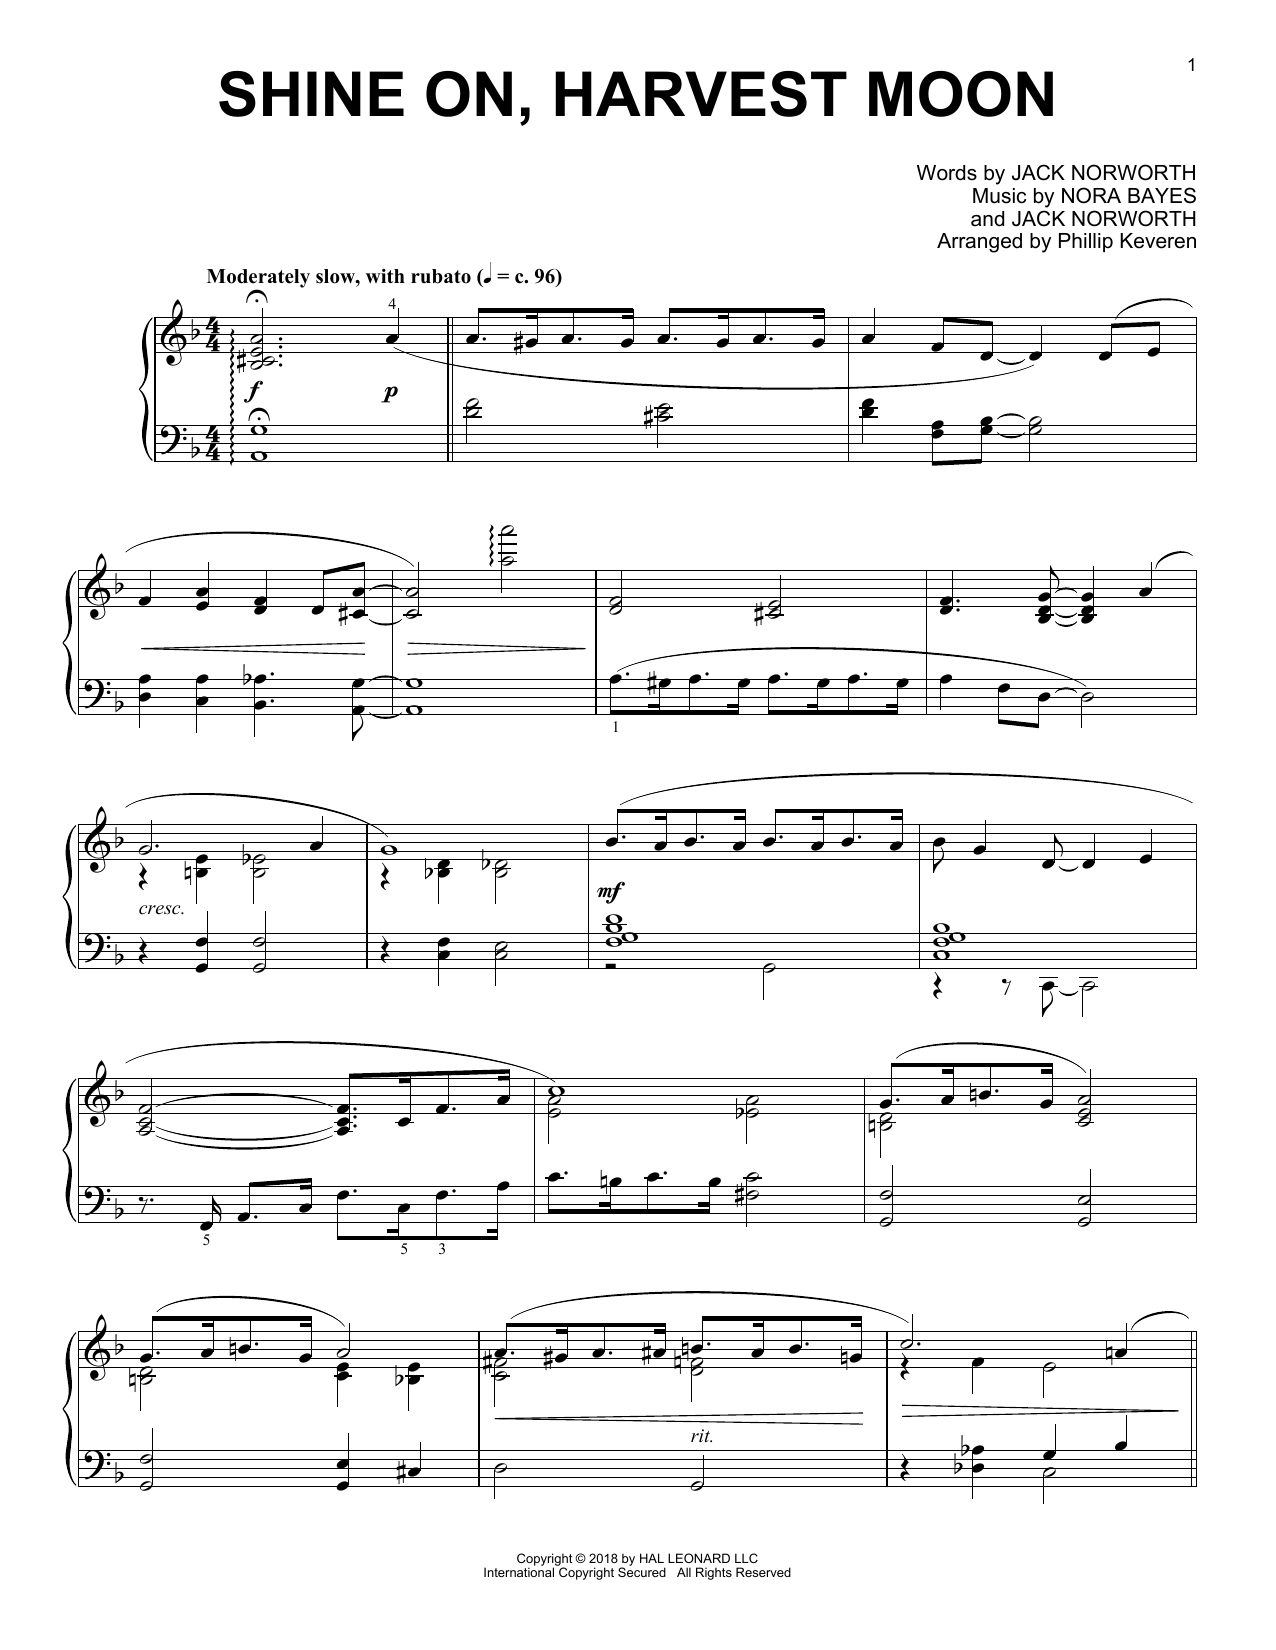 Download Jack Norworth 'Shine On, Harvest Moon (arr. Phillip Keveren)' Digital Sheet Music Notes & Chords and start playing in minutes